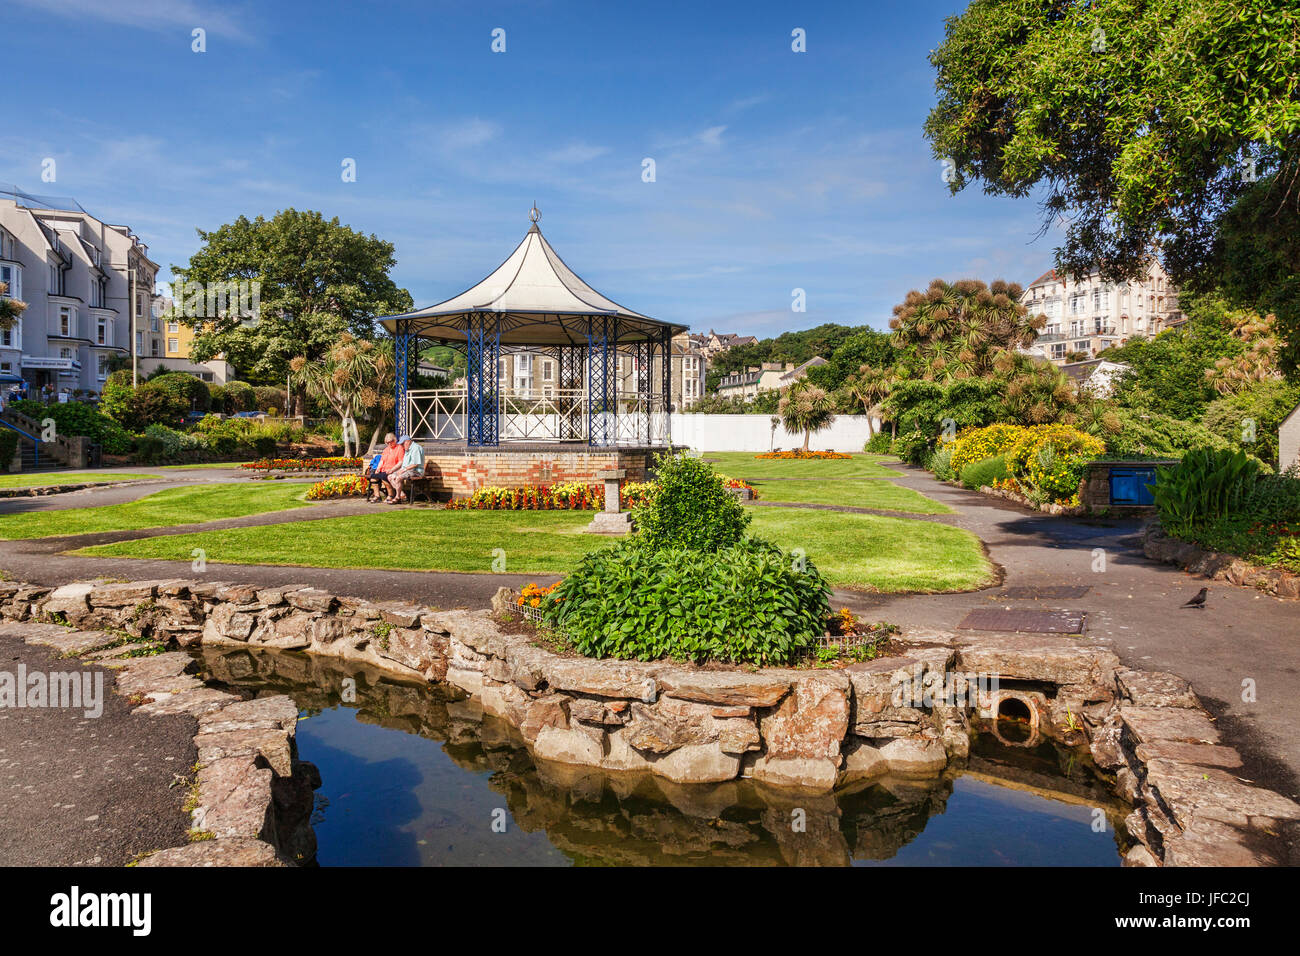 14 June 2017: Ilfracombe, Devon, England, UK - The bandstand in Runnymede Gardens on a warm summer day, Stock Photo